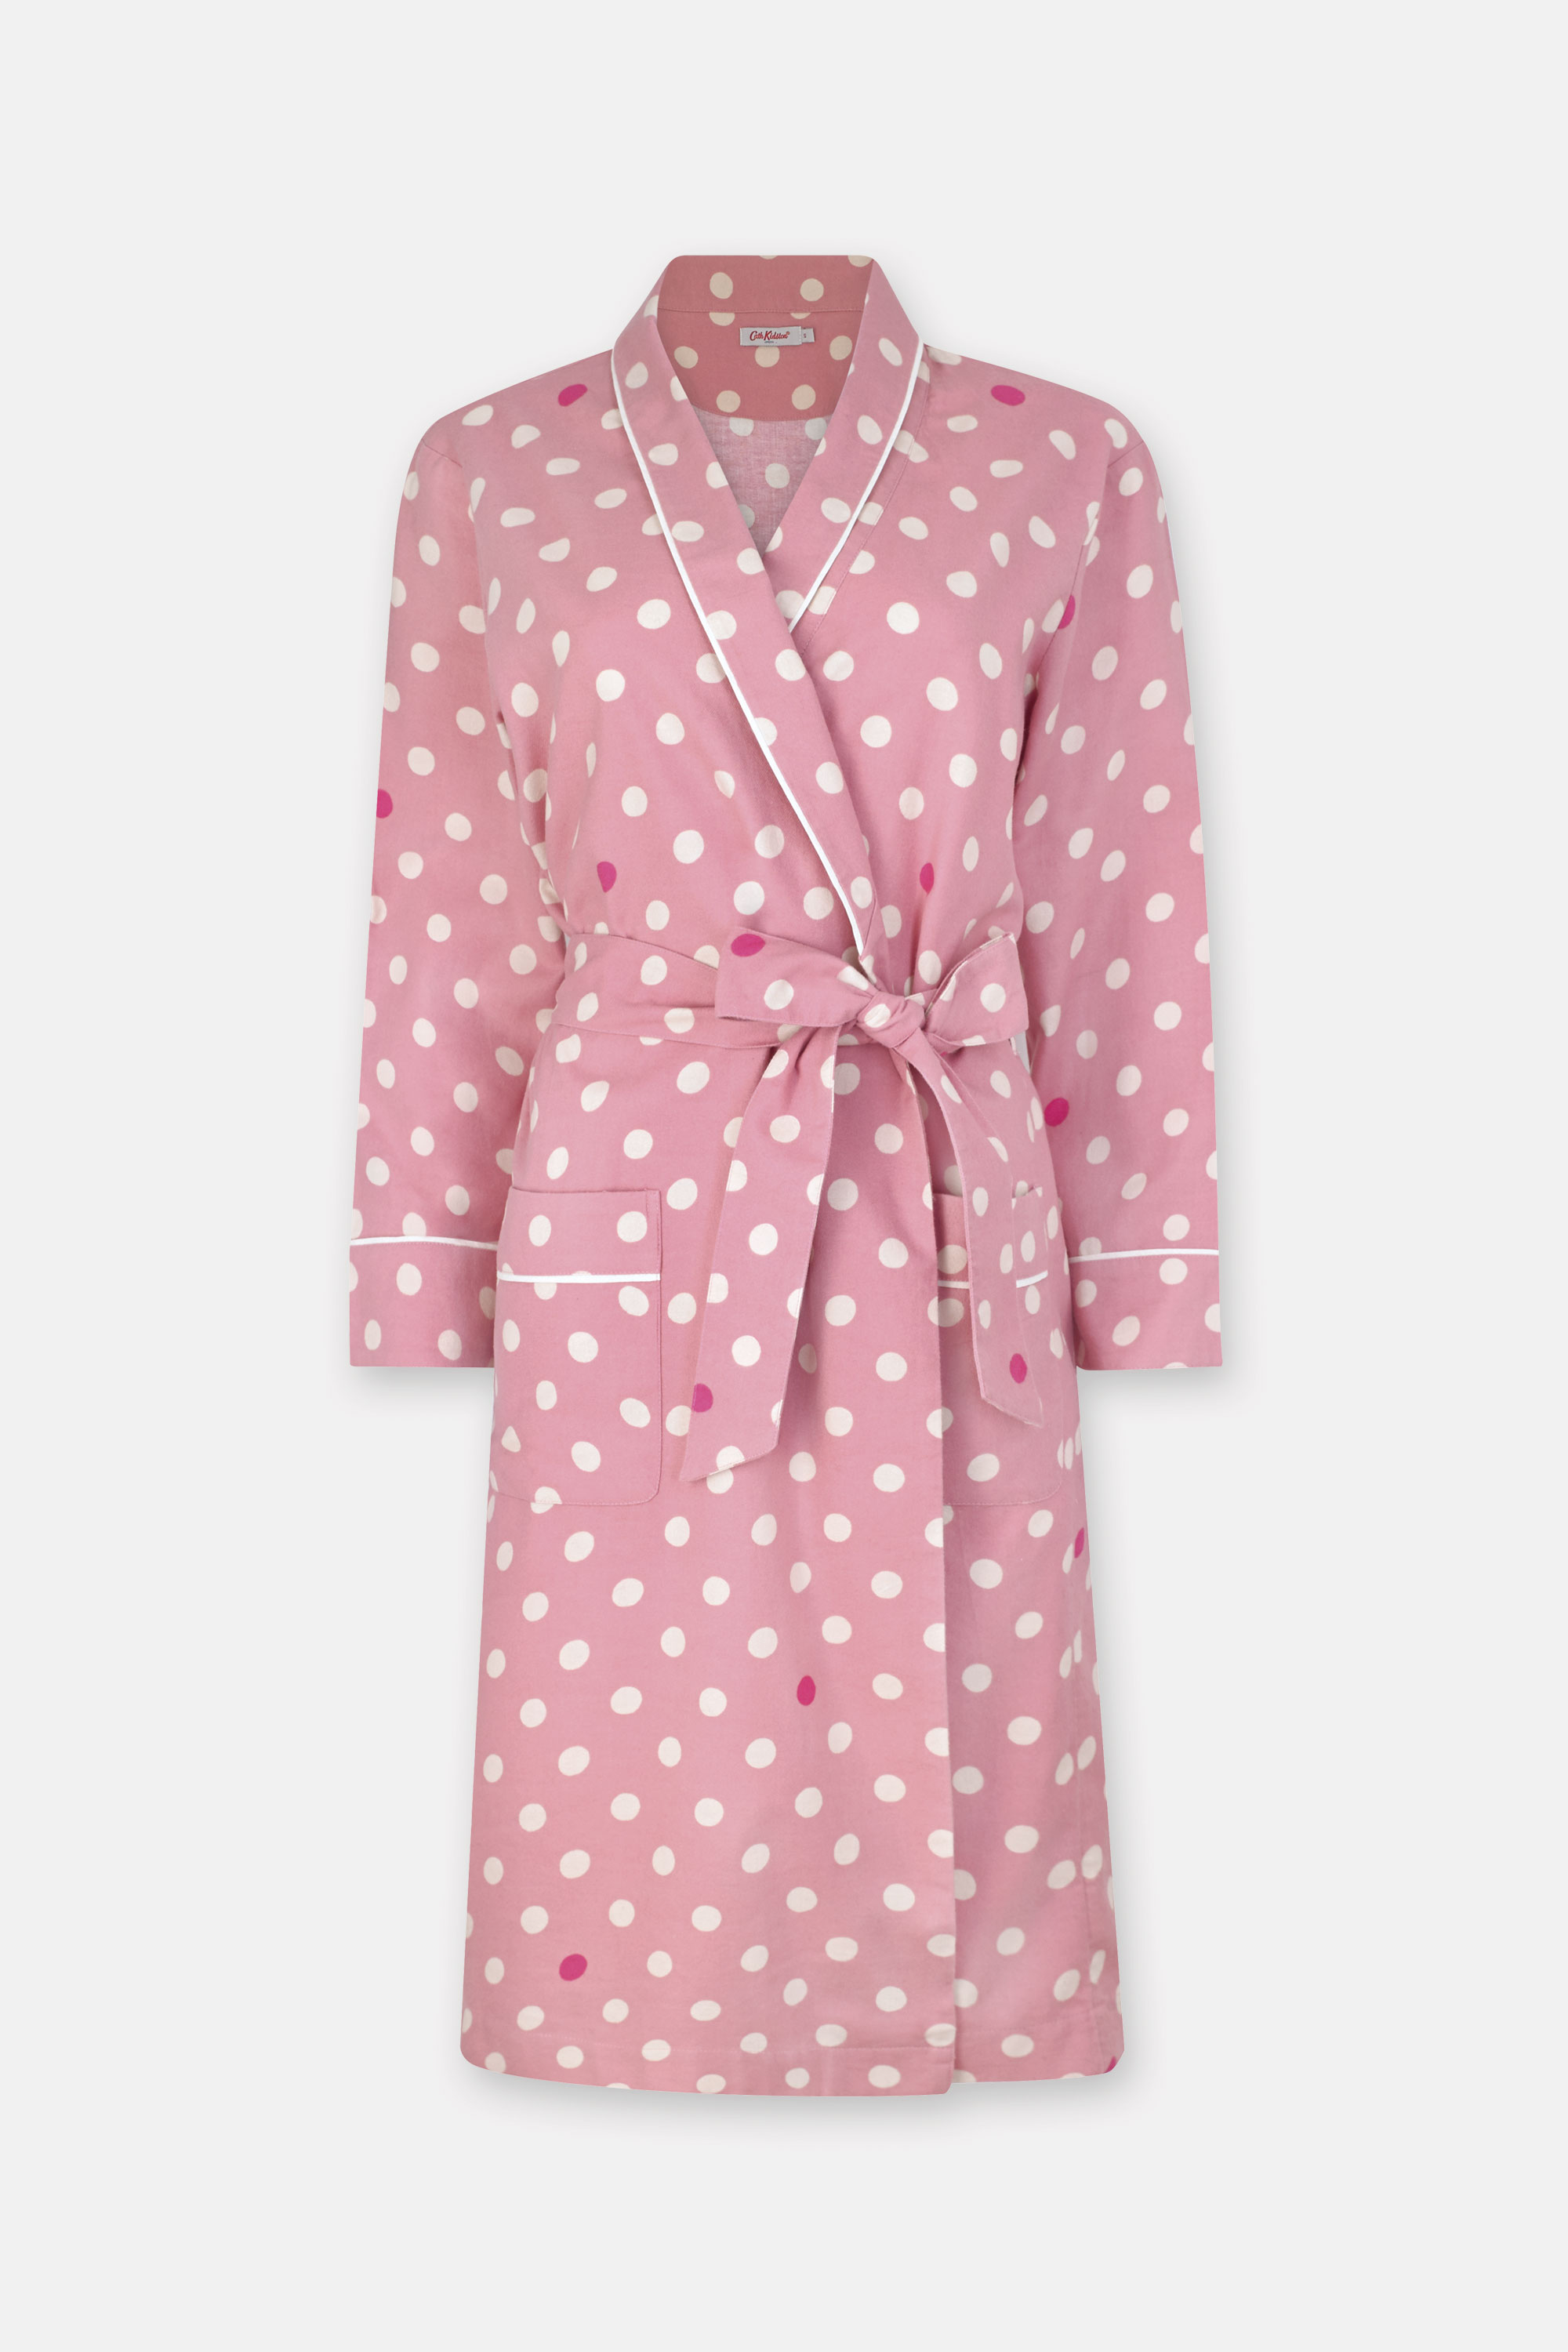 Cath Kidston Charity Spot Cotton Dressing Gown in Pale Rose, XS